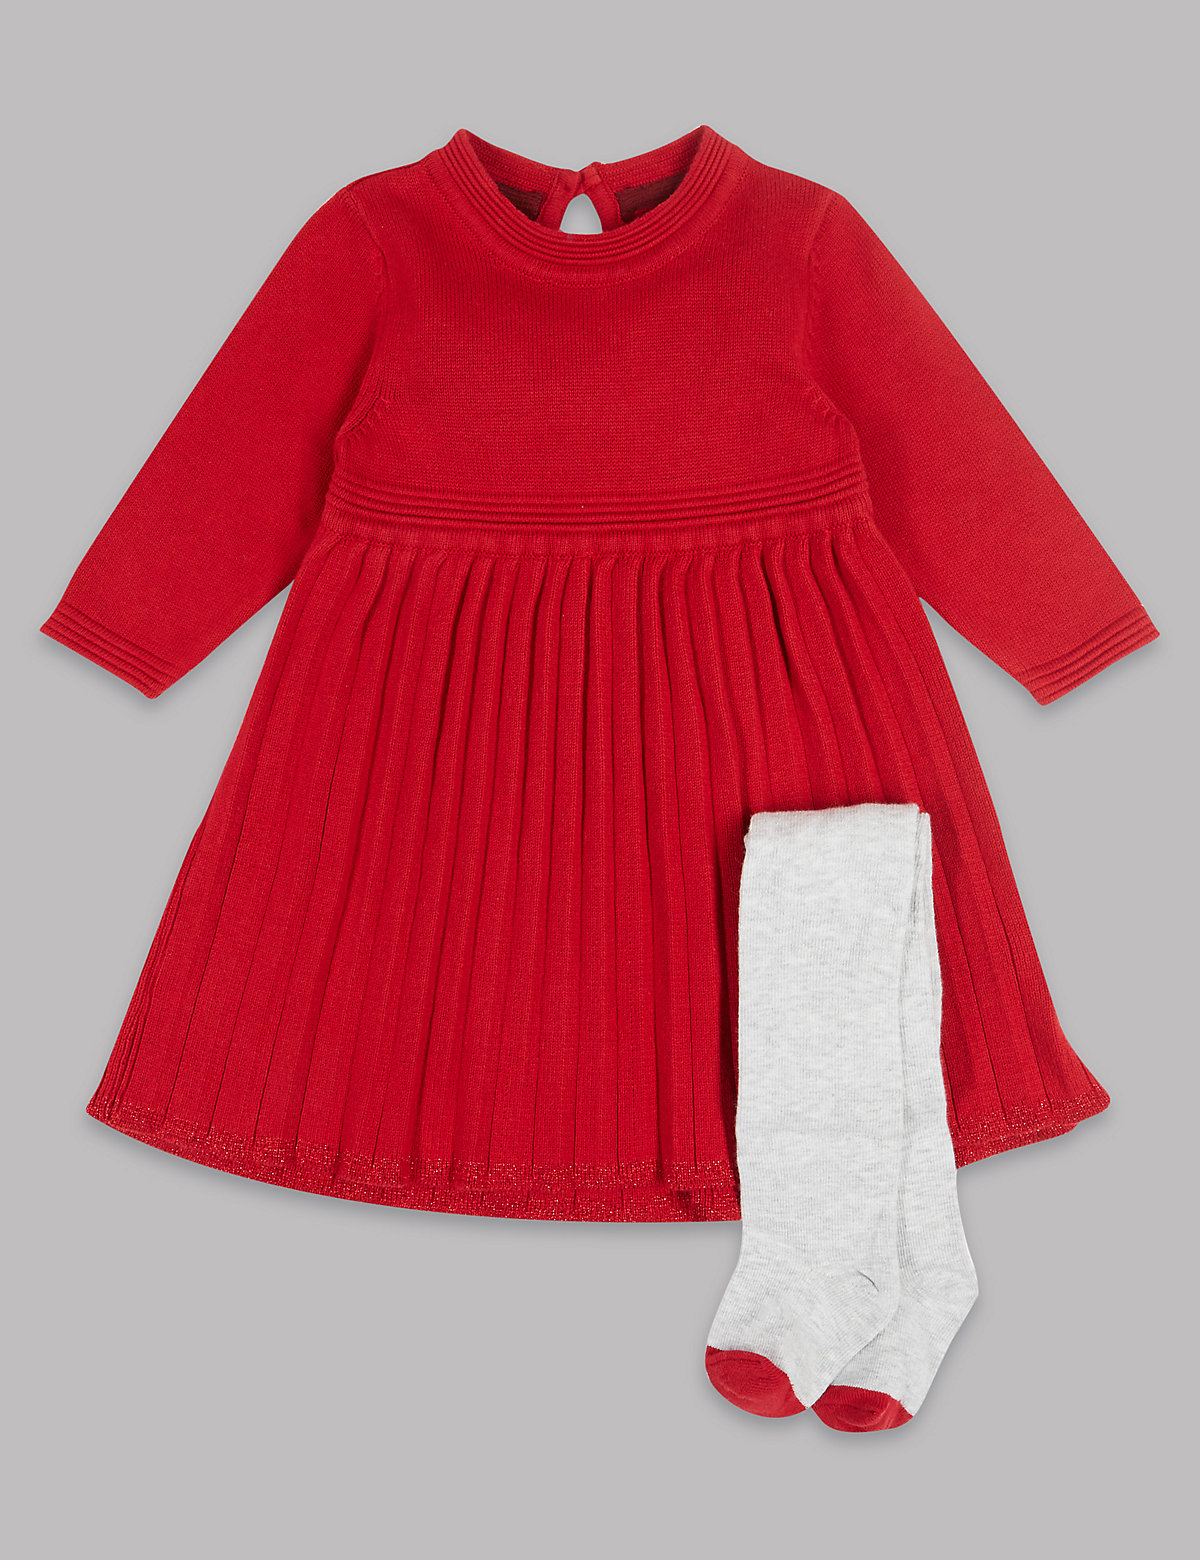 Autograph 2 Piece Knitted Pleat Dress with Tights